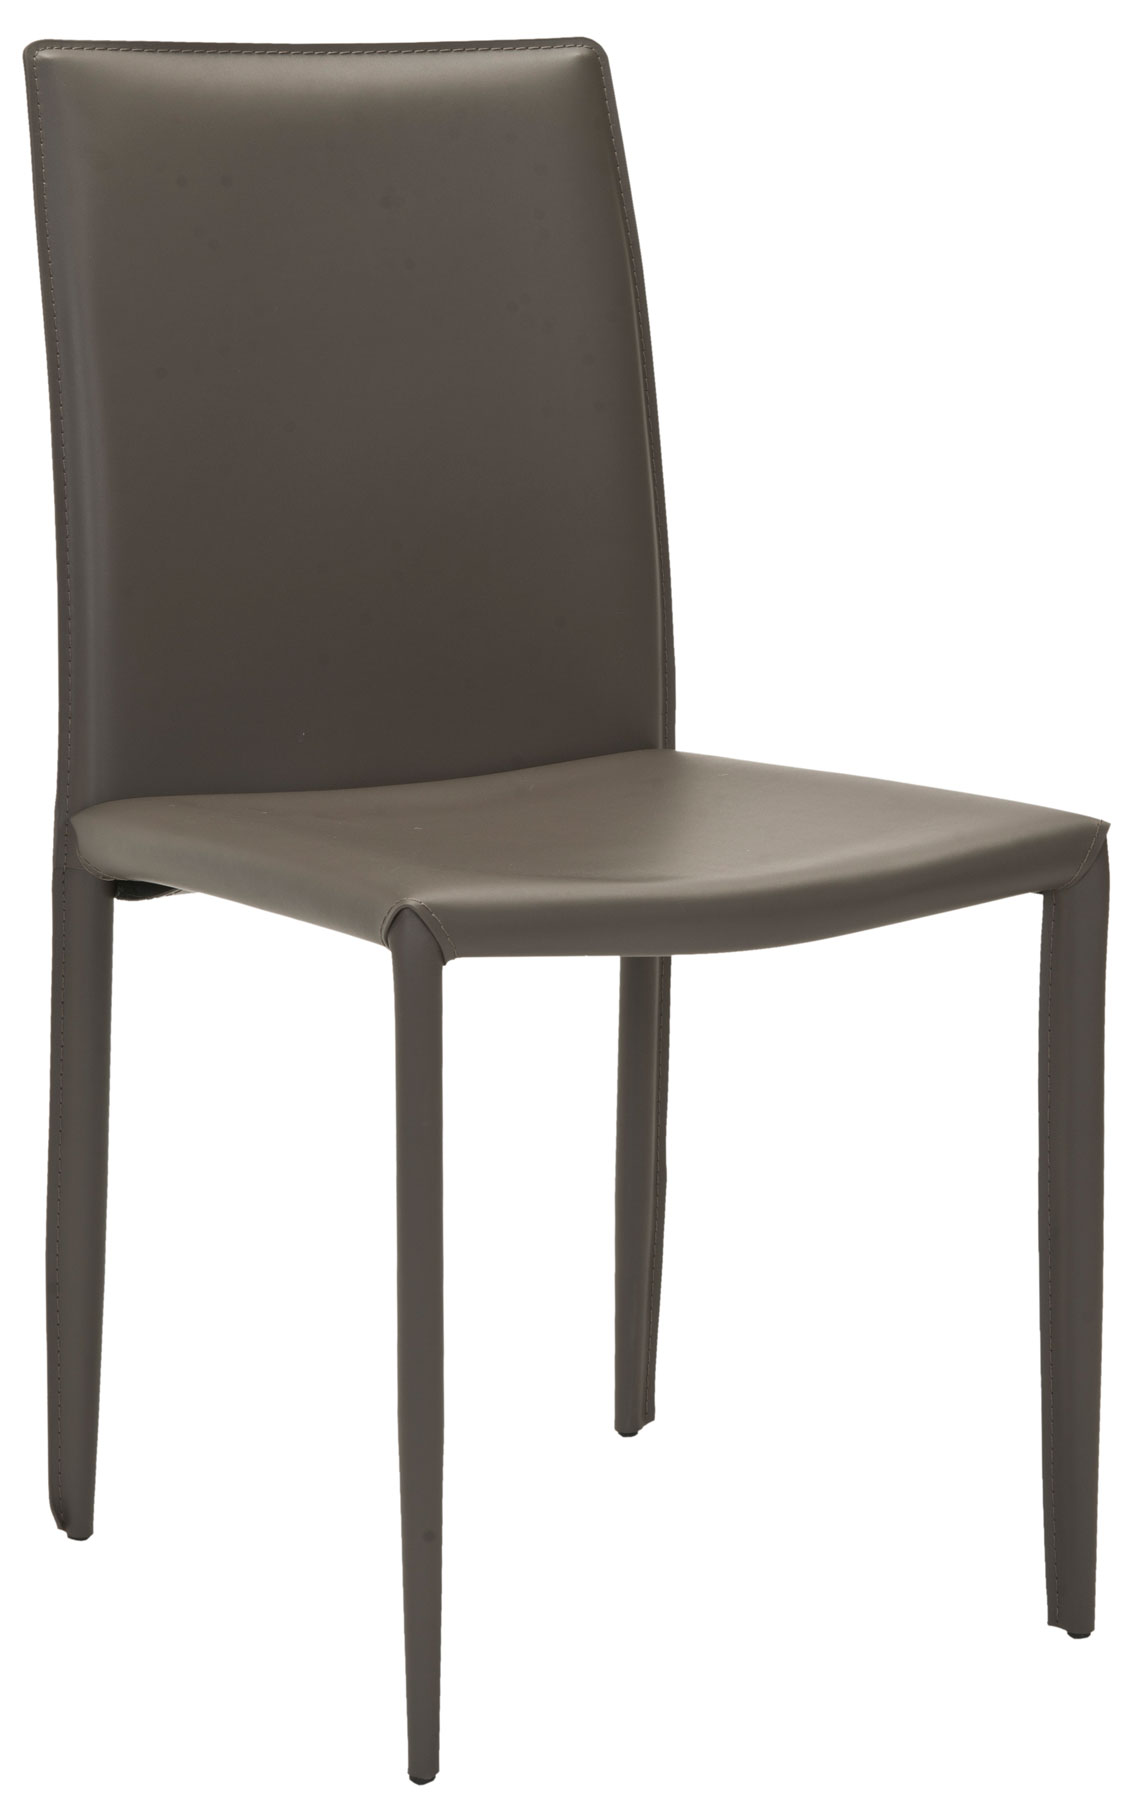 fox2009d set2 dining chairs furniture by safavieh. Black Bedroom Furniture Sets. Home Design Ideas